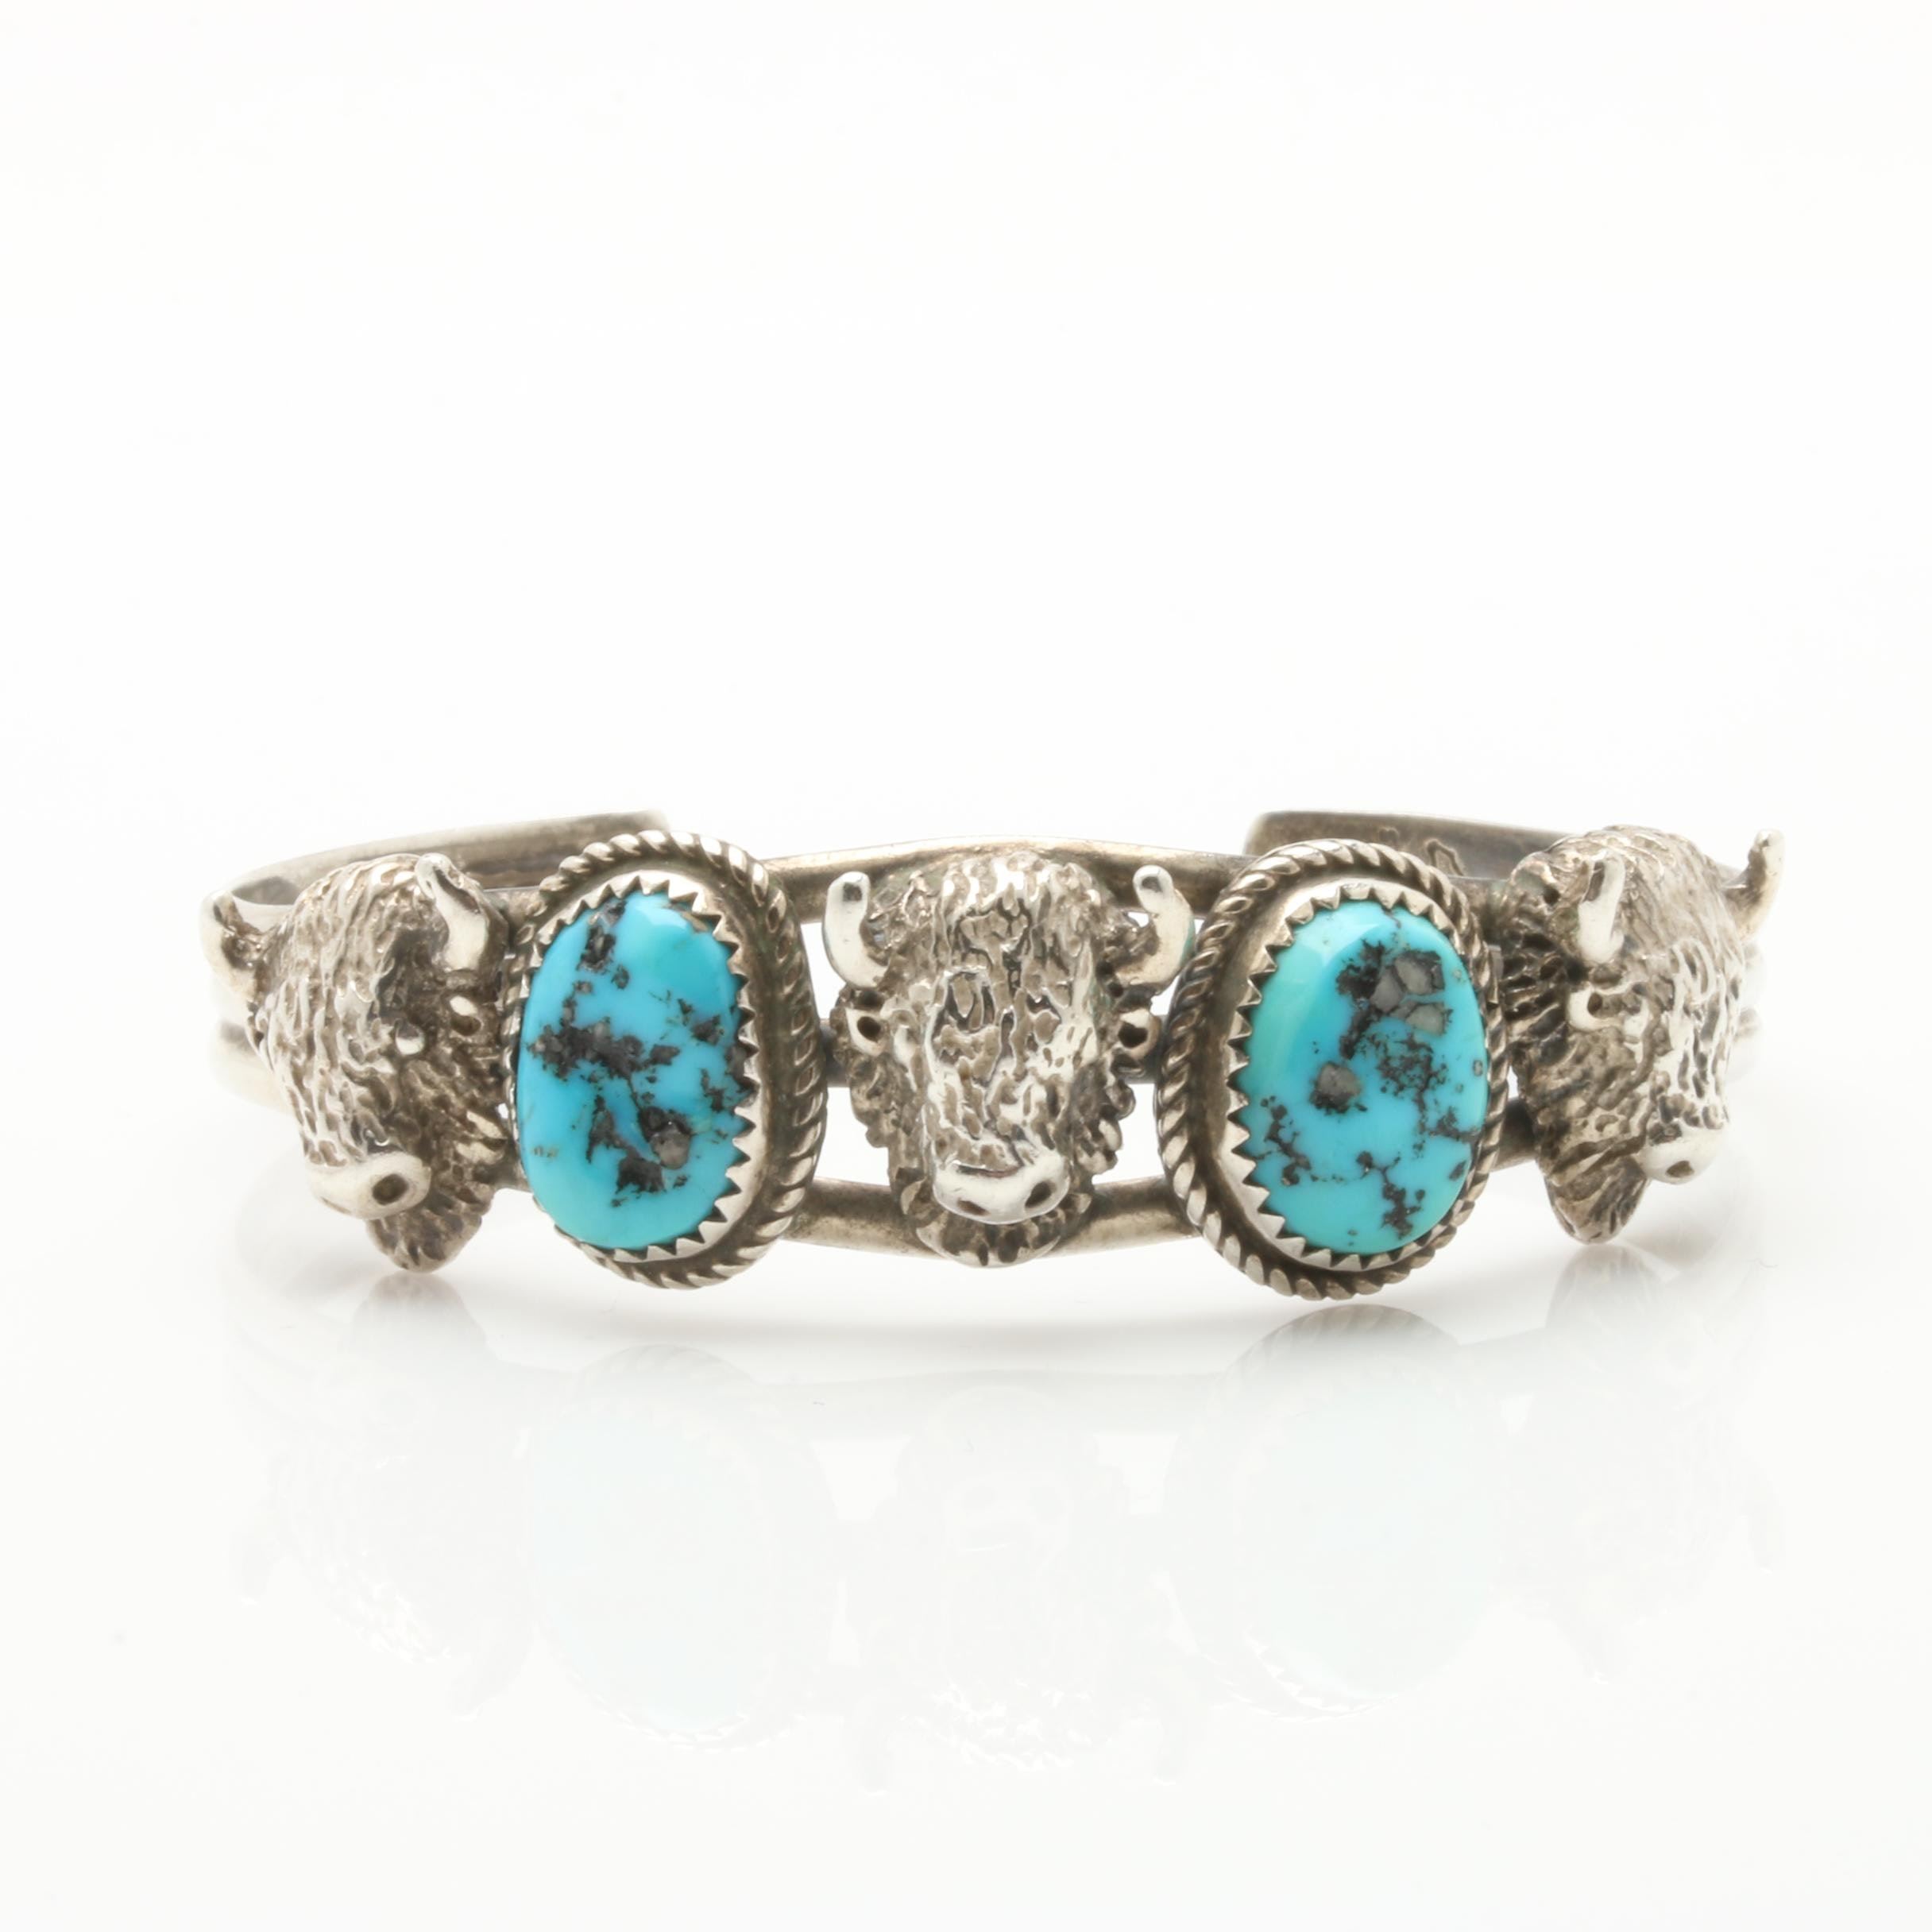 Running Bear Trading Co. Sterling Silver Turquoise Cuff